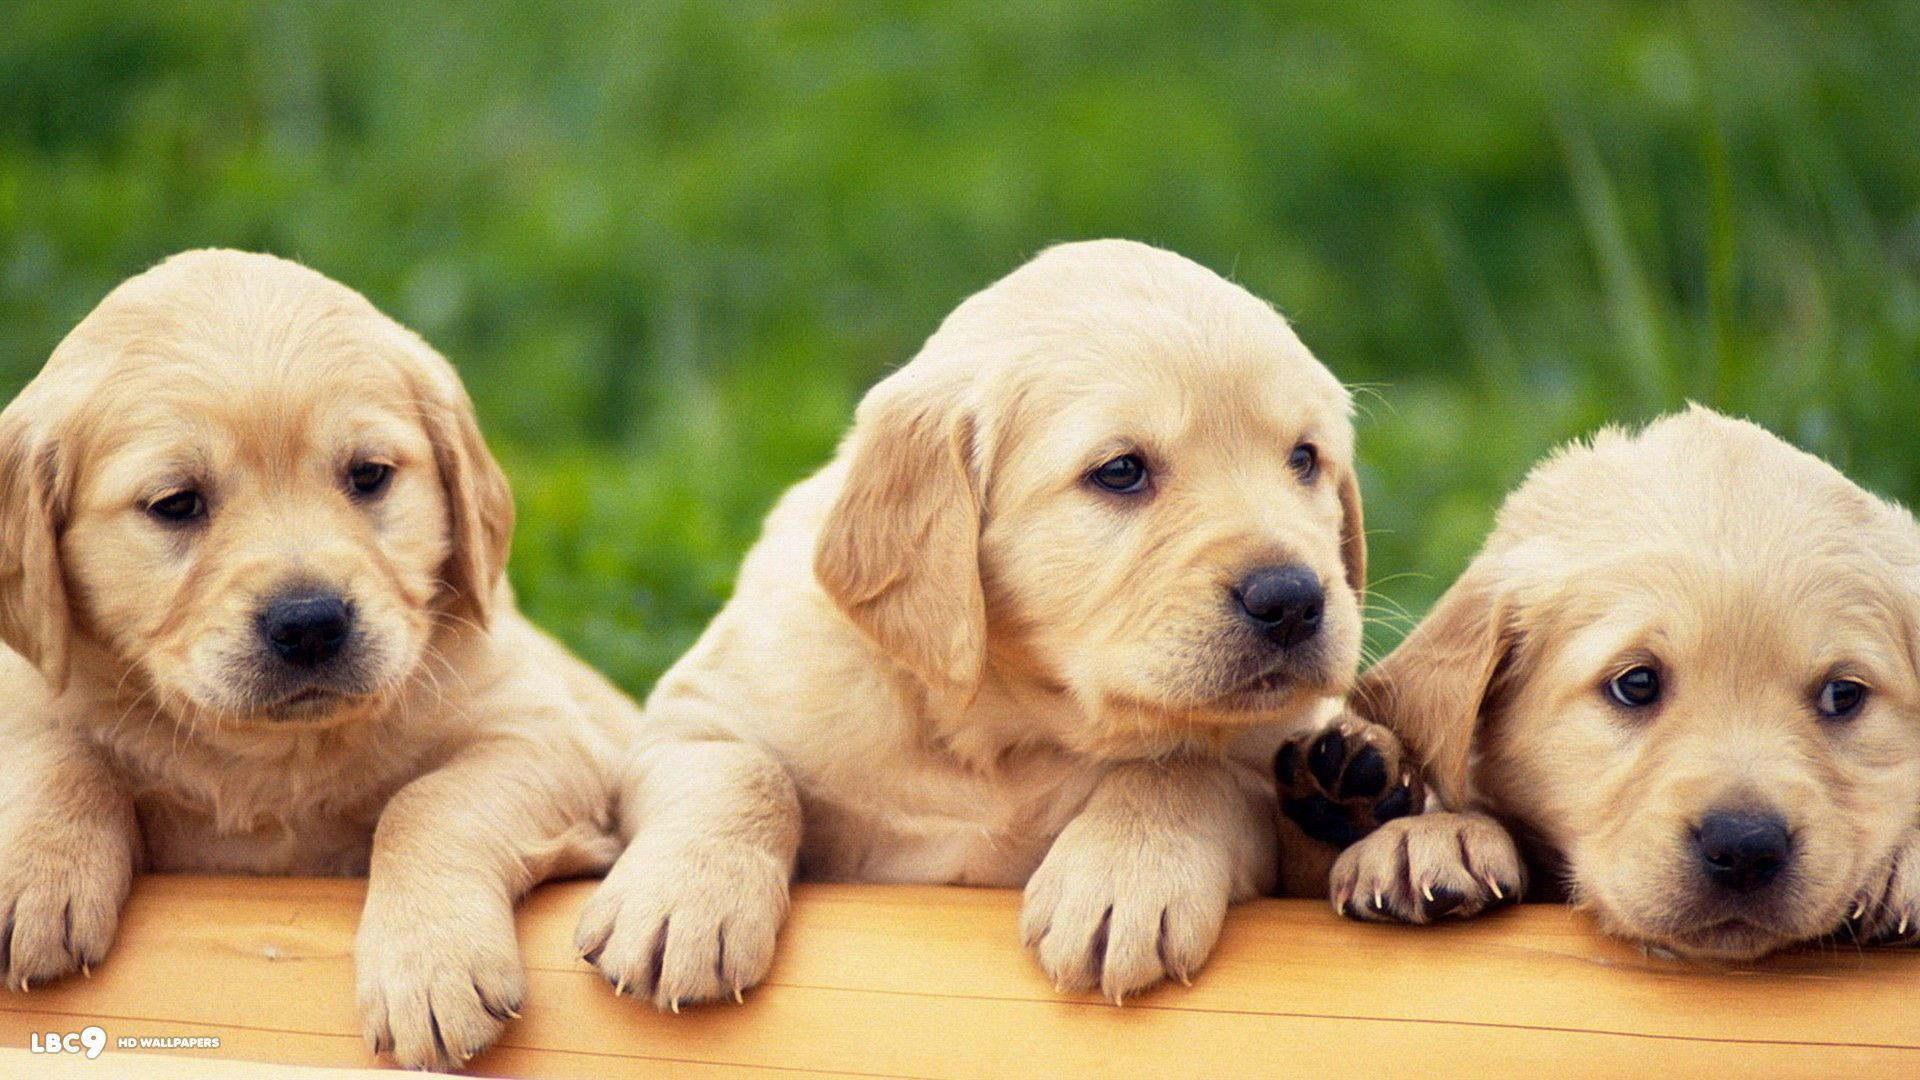 Labrador Puppy Wallpaper